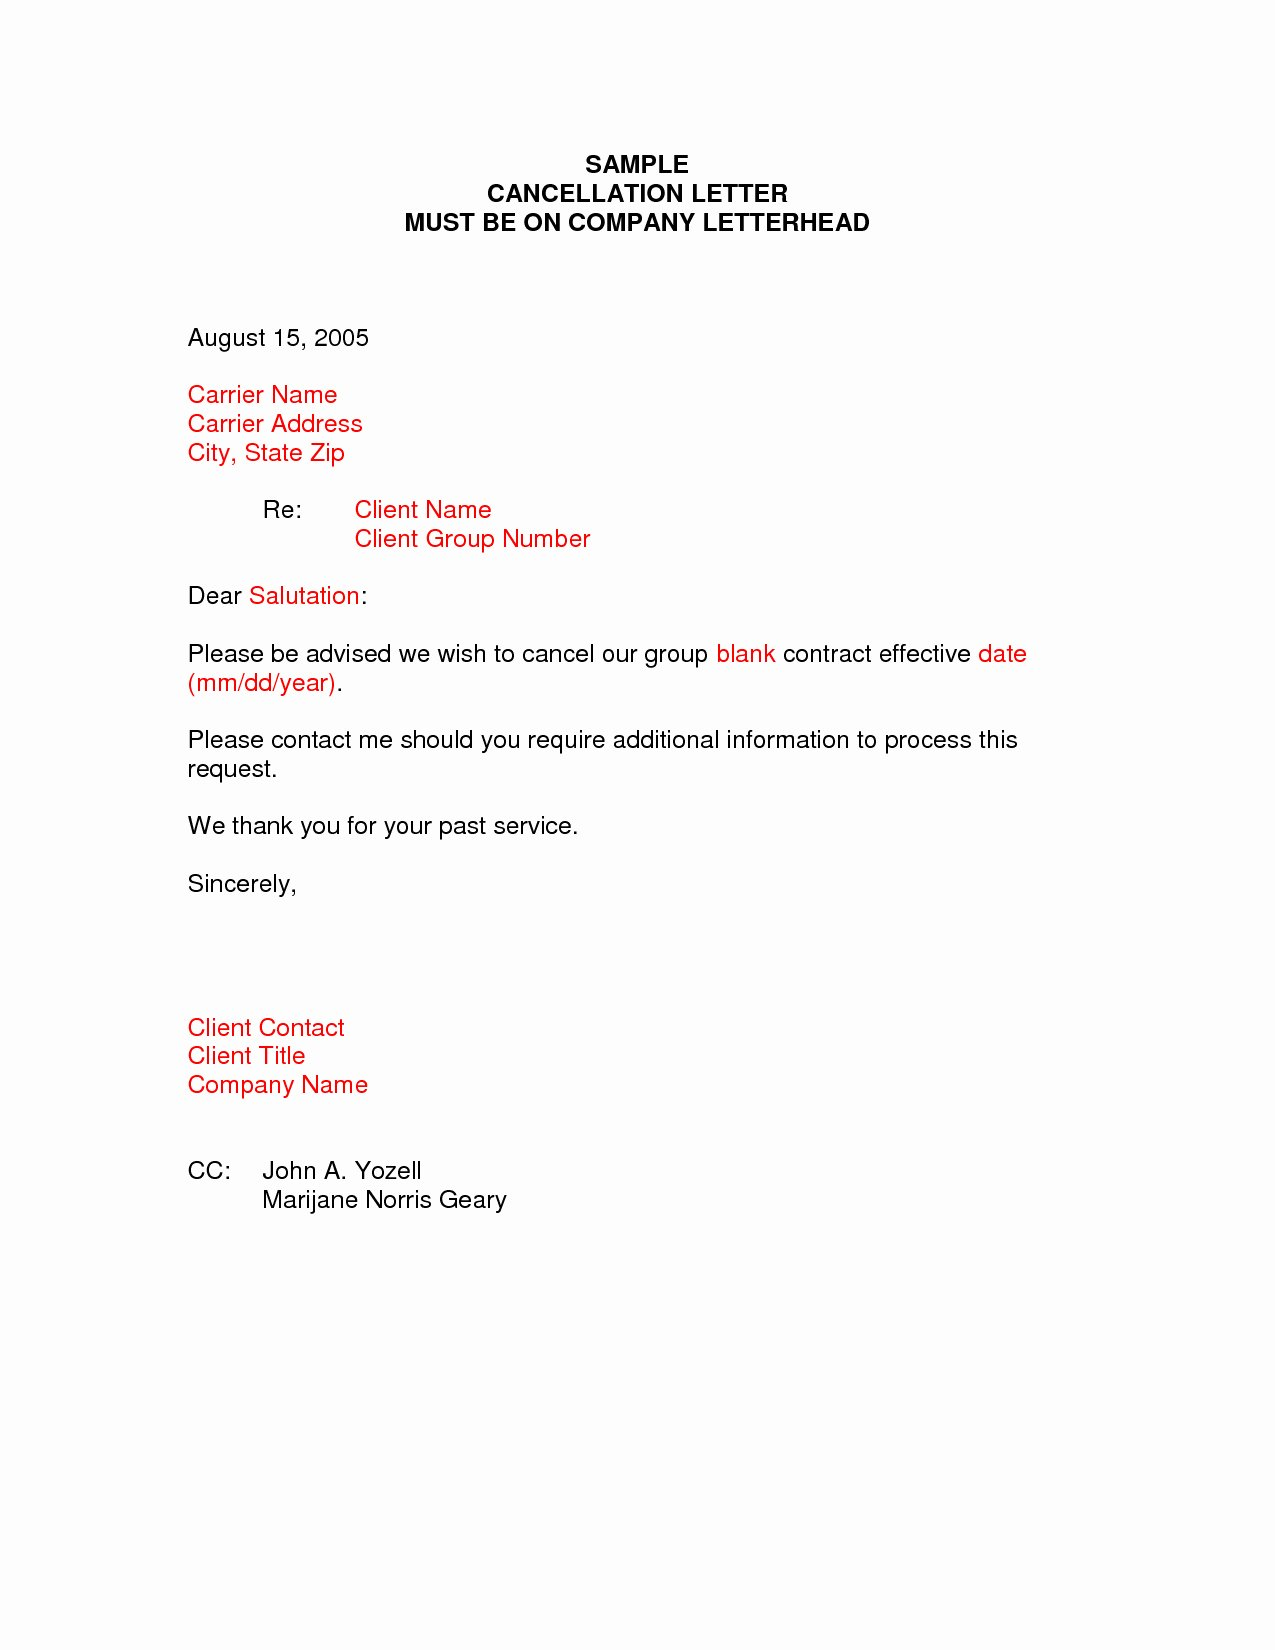 Timeshare Cancellation Letter Sample Elegant Timeshare Cancellation Letter Template Samples